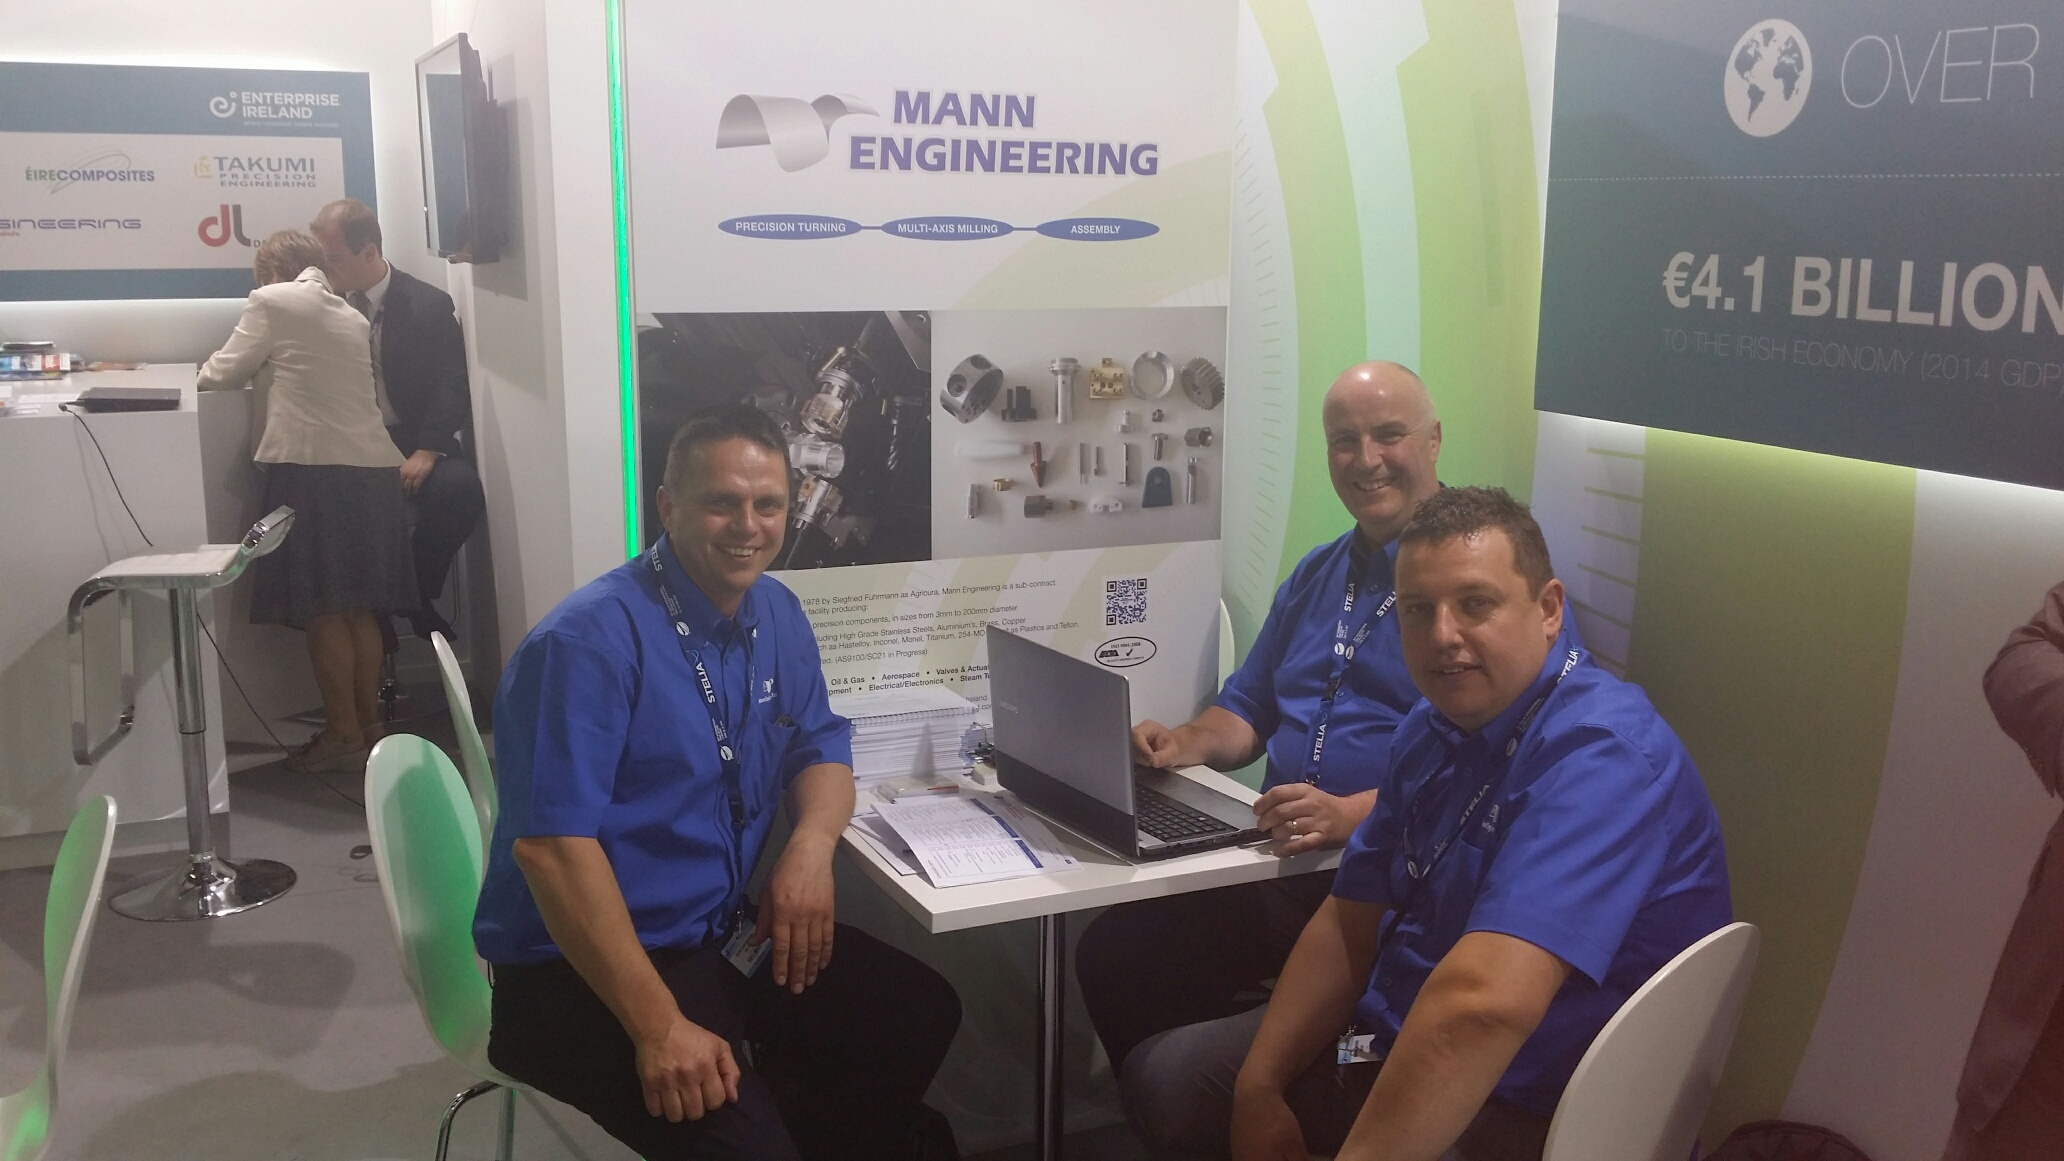 Mann Engineering at Paris Air Show 2015